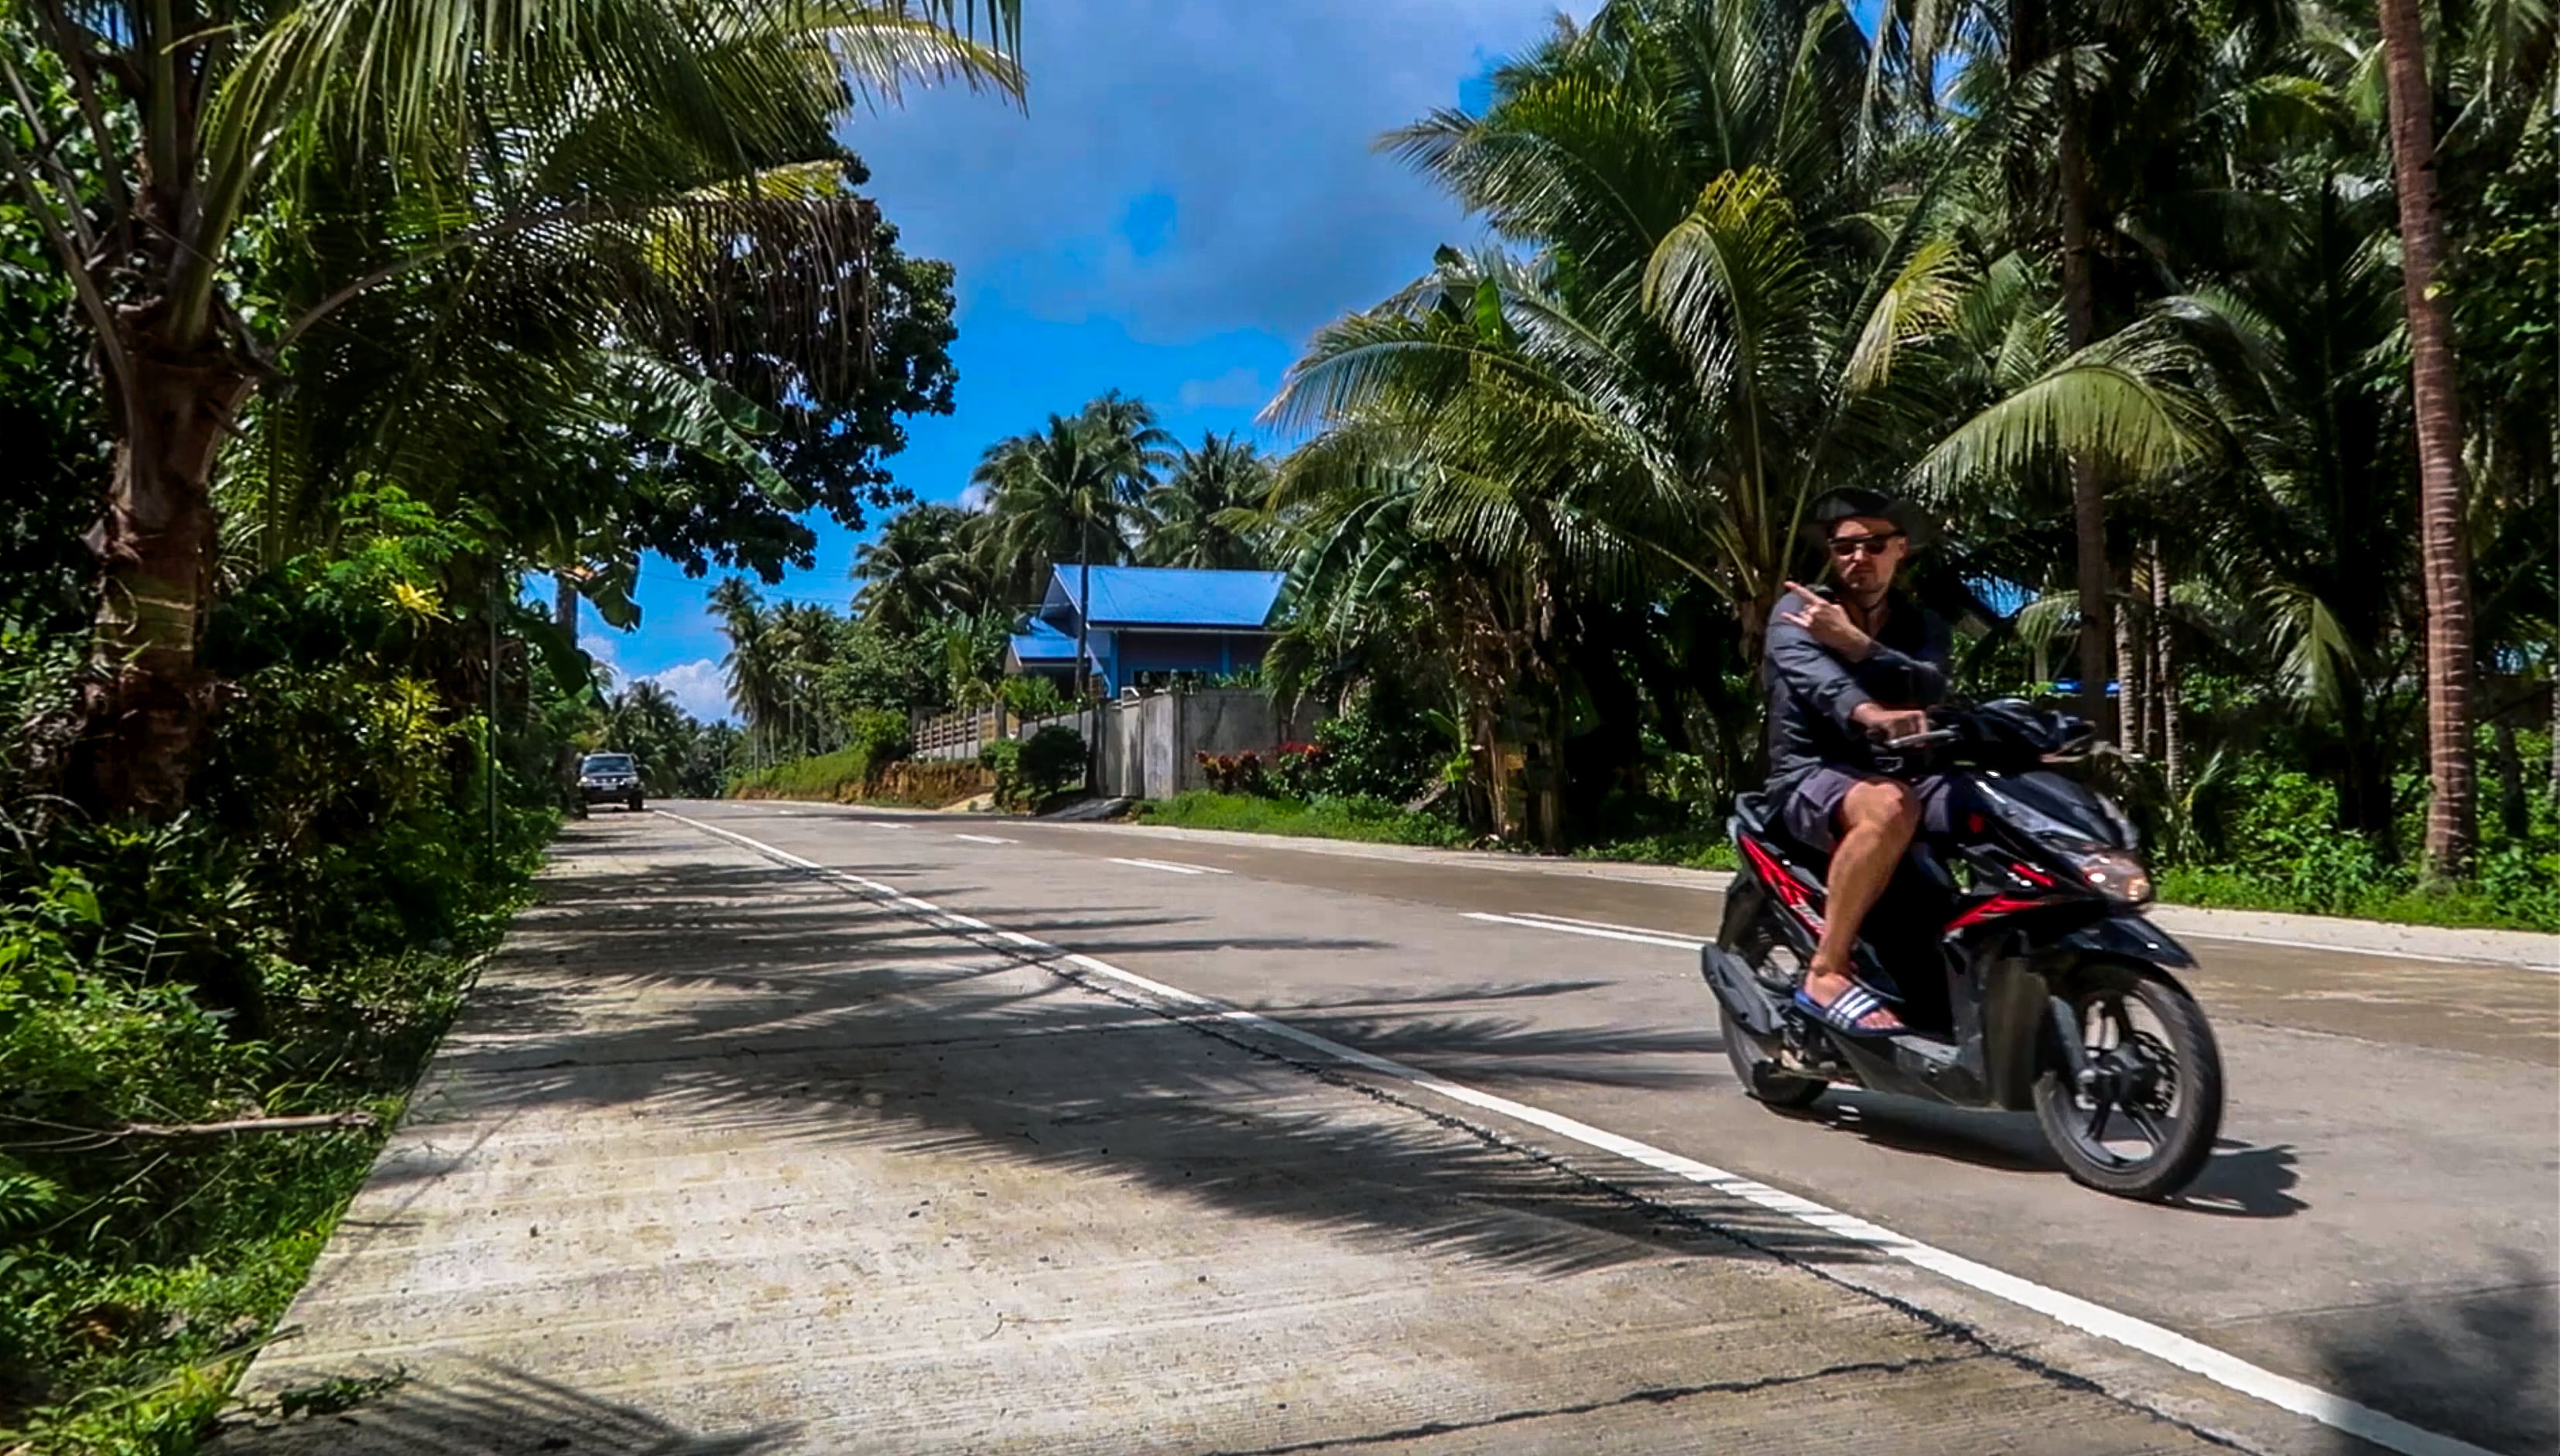 lennythroughparadise on scooter riding on siargao island in the philippines